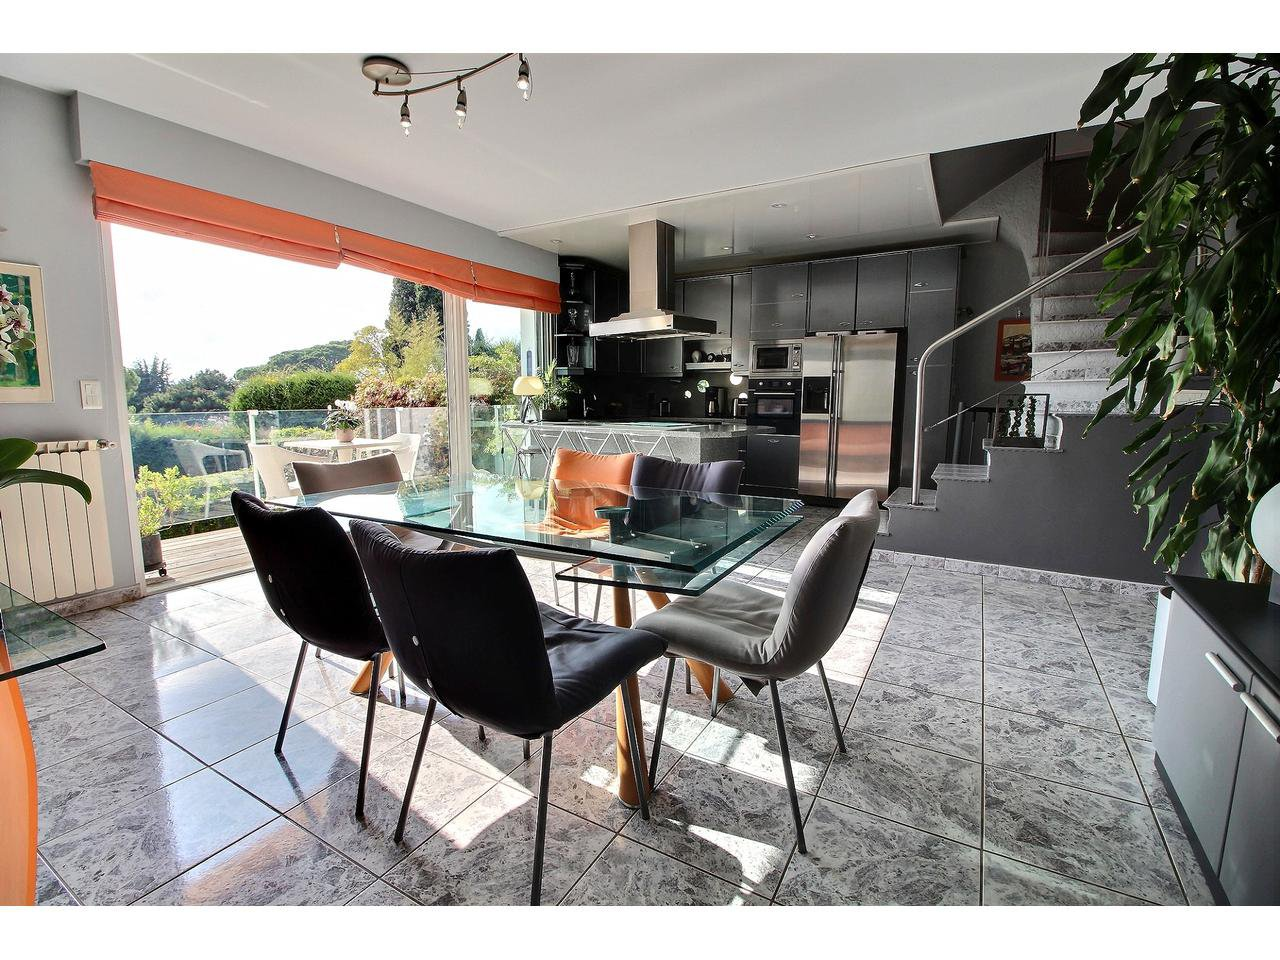 Beautiful villa for sale in Cannes Californie with swimming pool